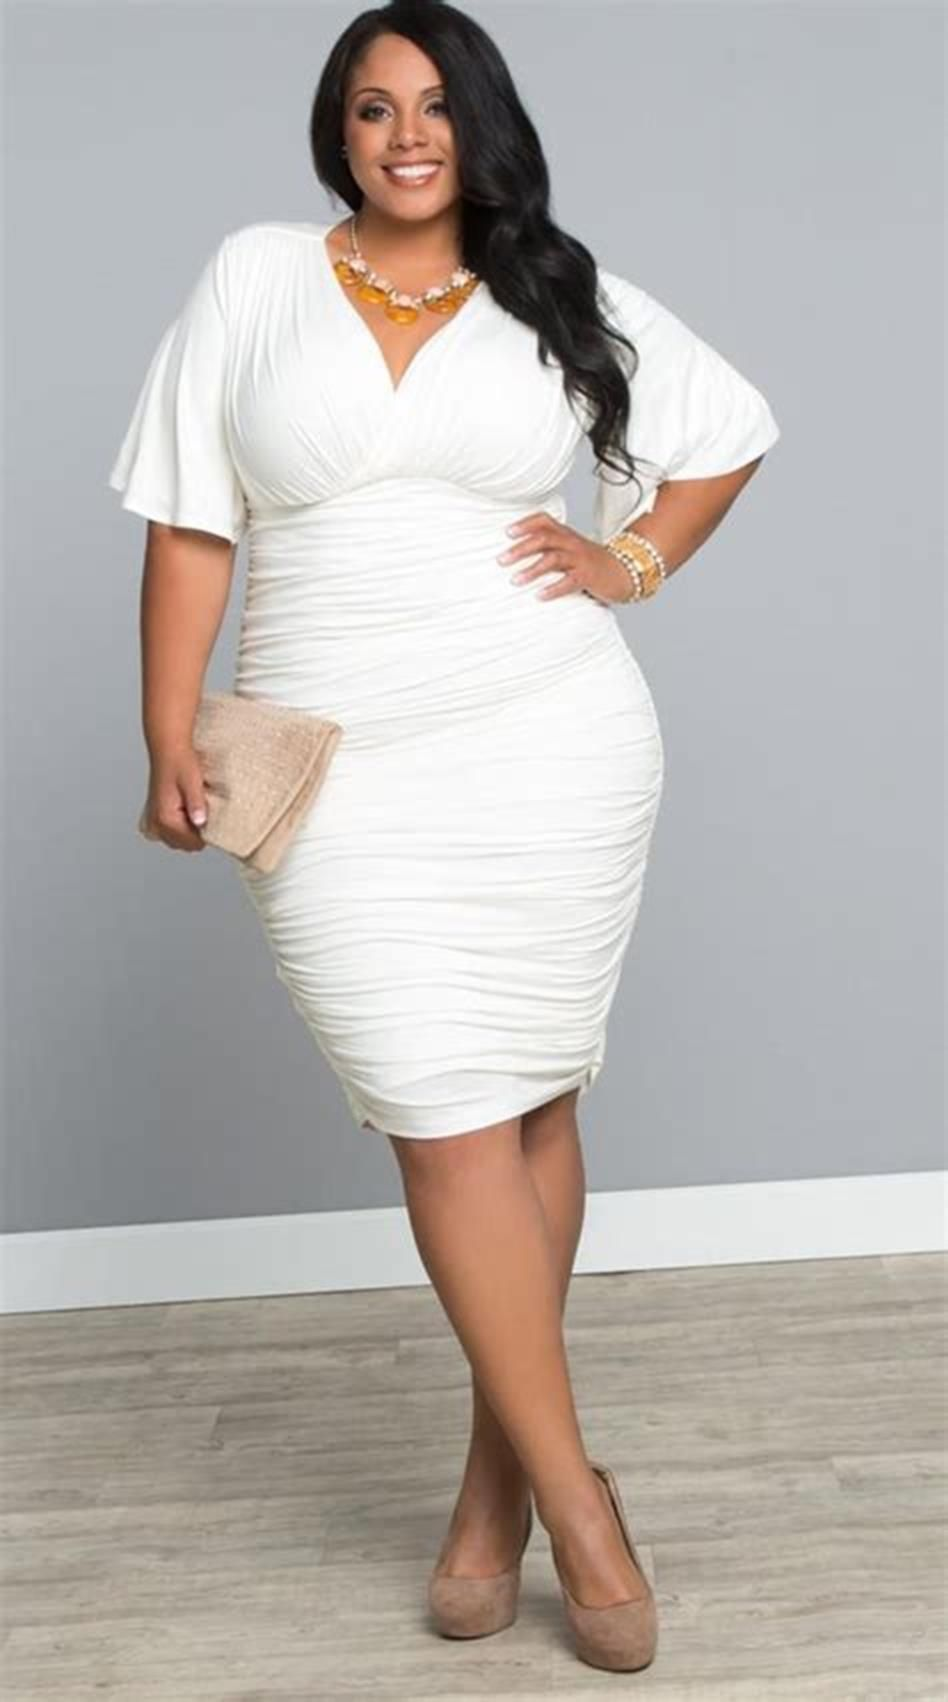 23 Stylish All White Party Outfits For Women To Copy Now Fashiontowear White Plus Size Dresses White Cocktail Dress White Dress Party [ 1702 x 948 Pixel ]